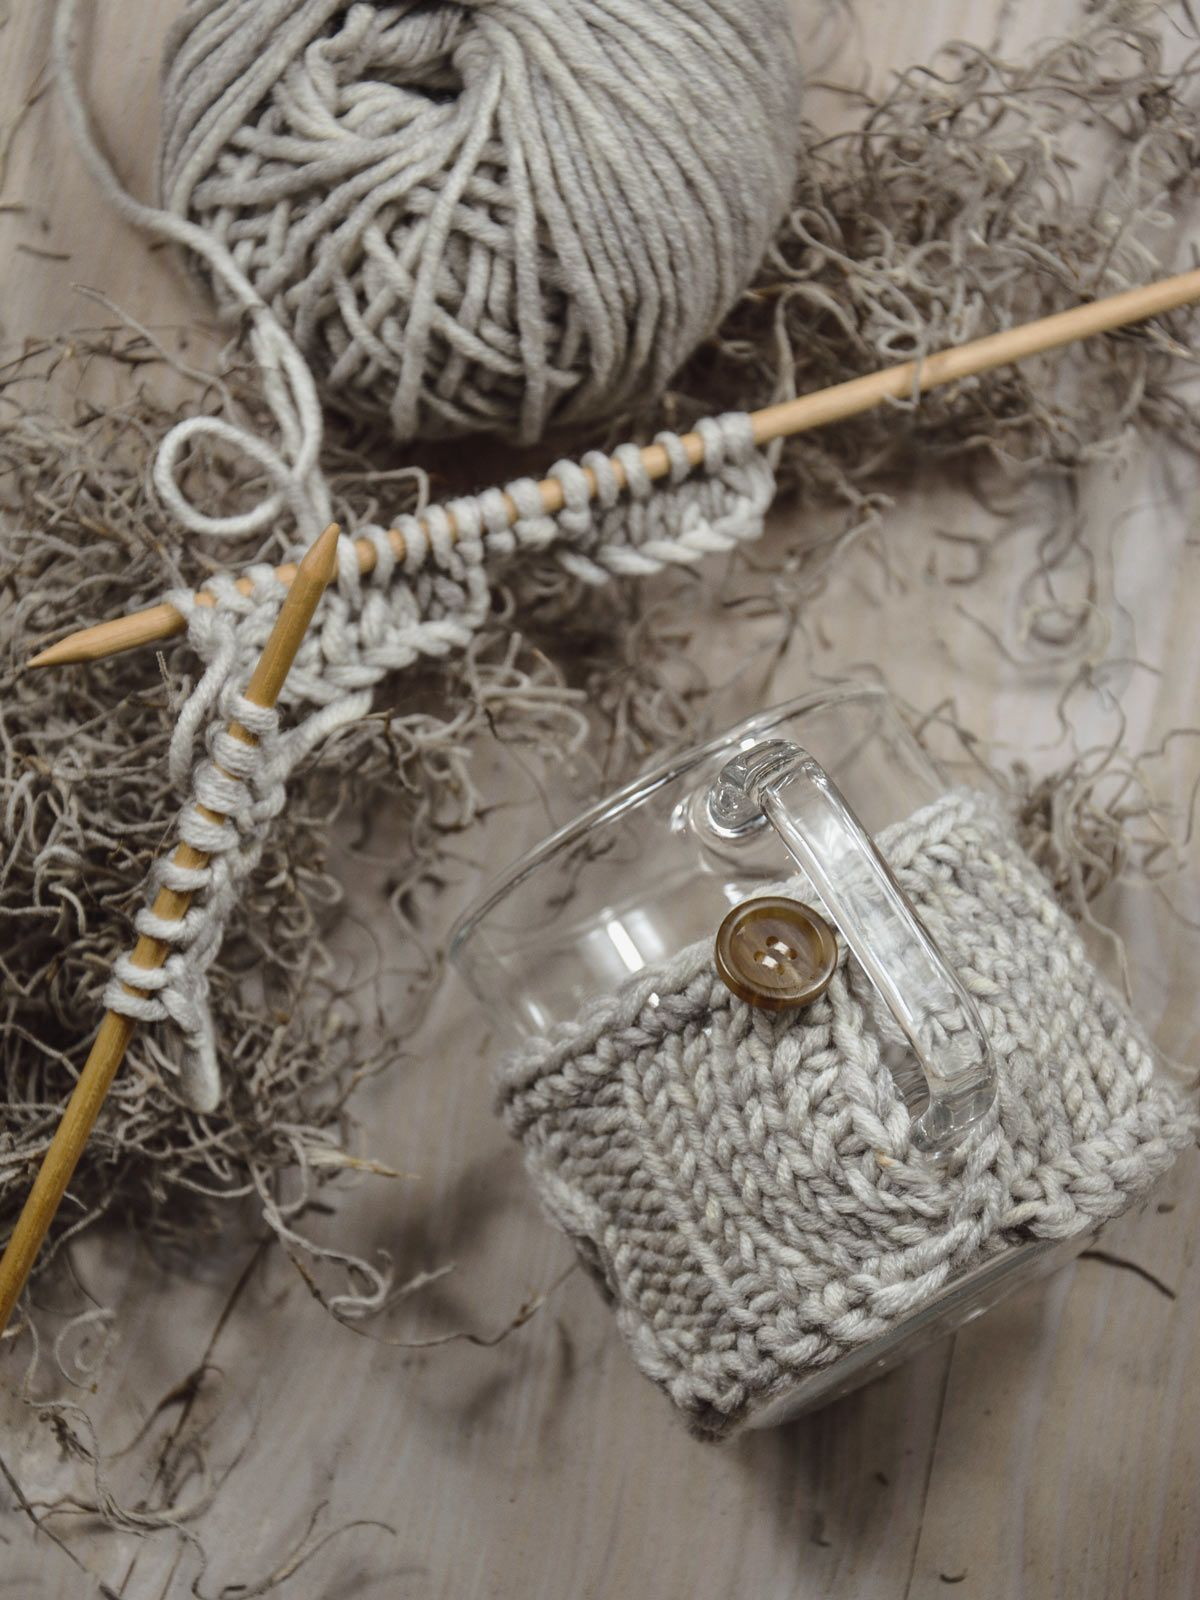 Diy Mx Living Diy Pinterest Stricken Häkeln Und Stricken